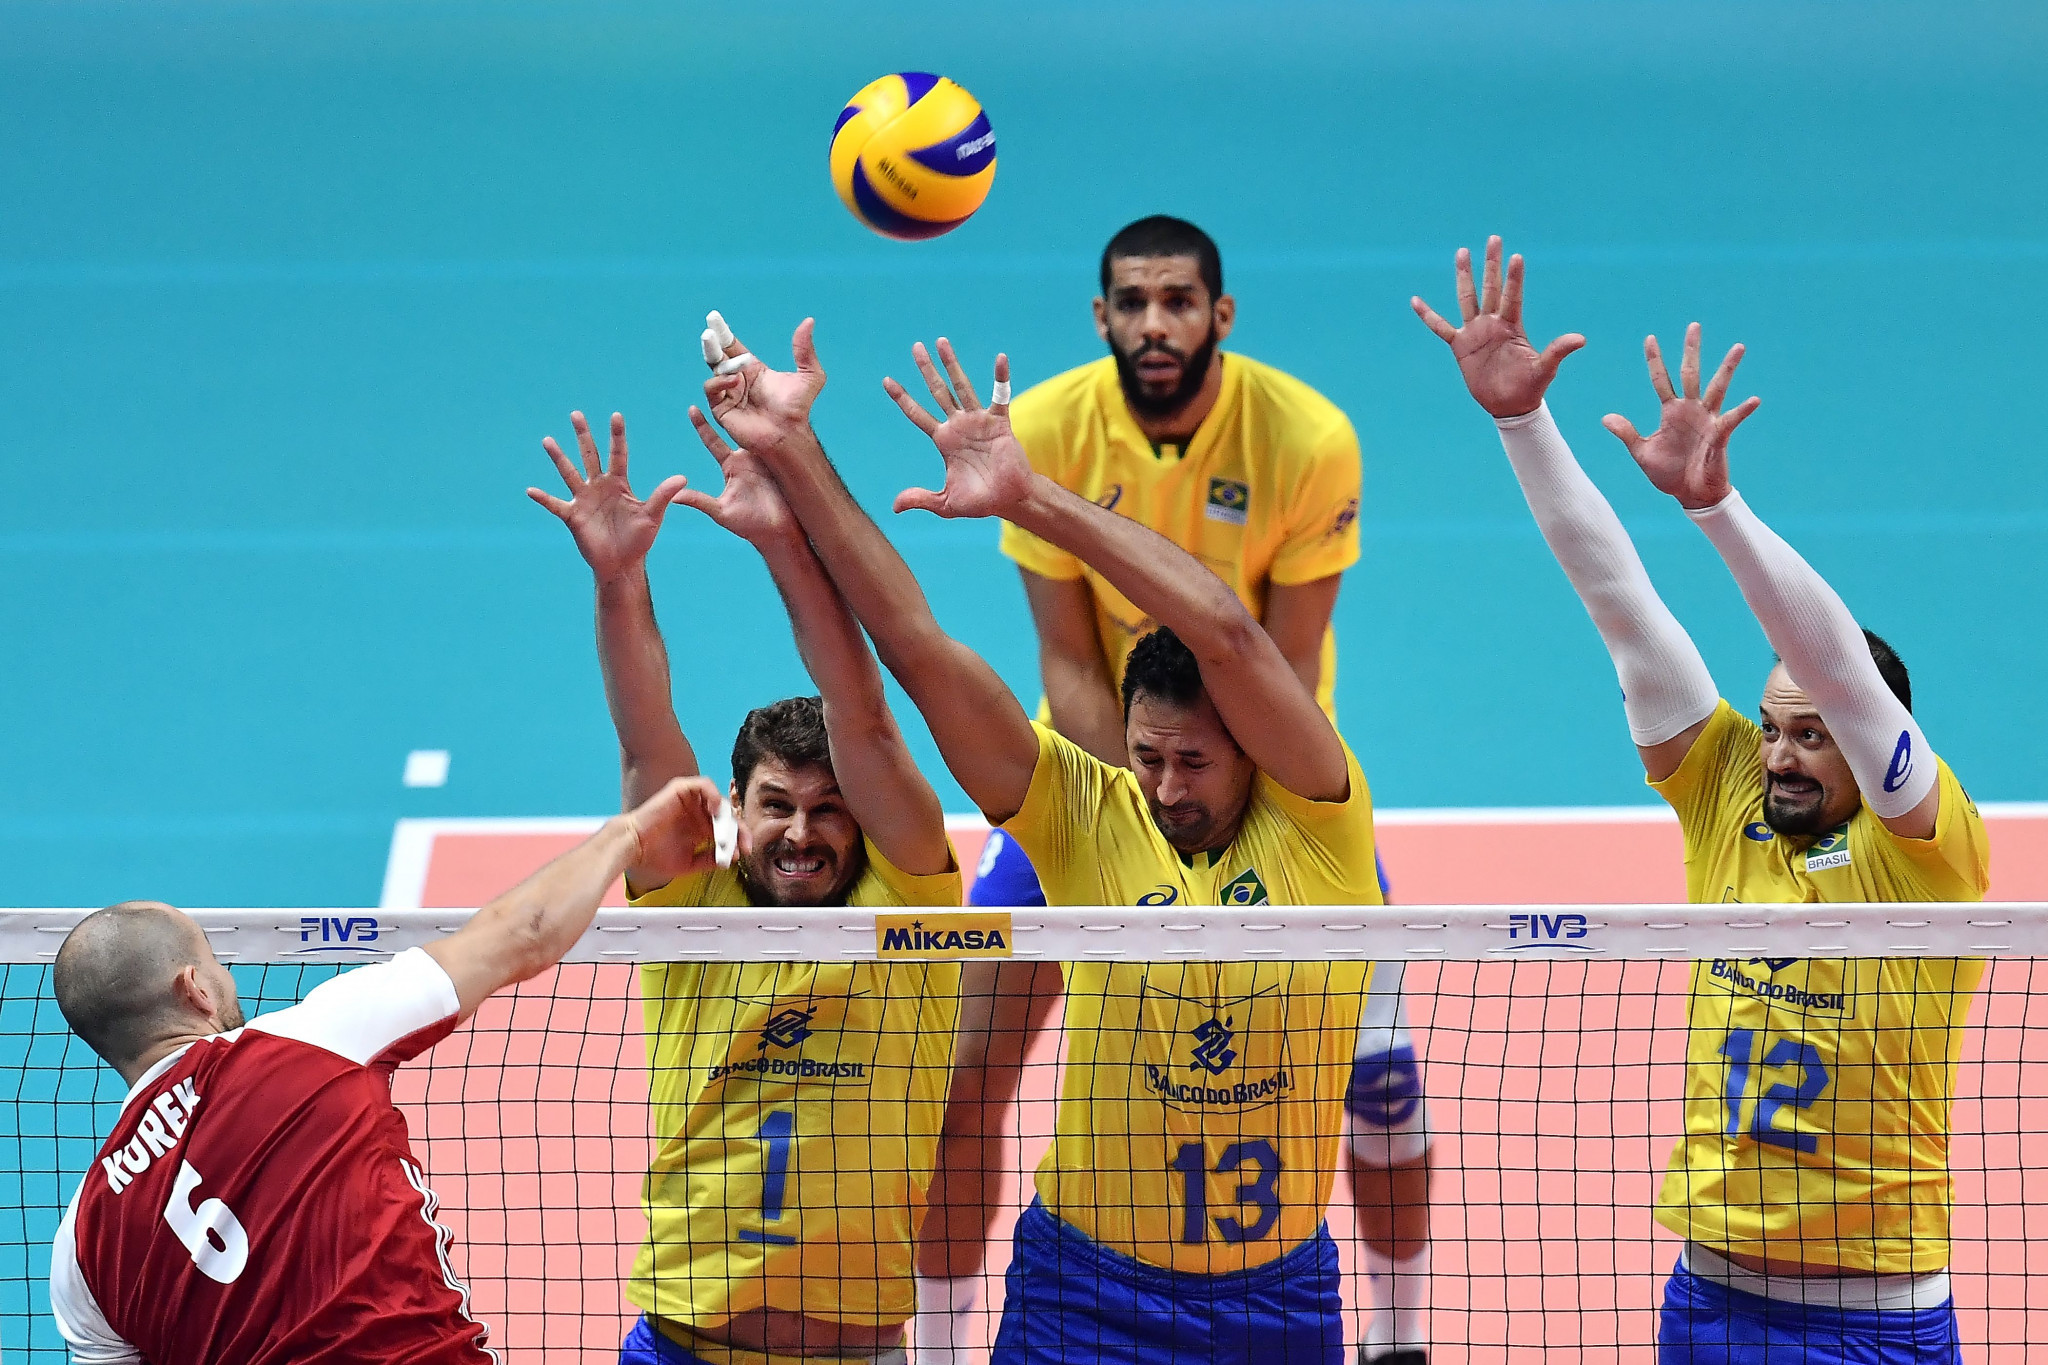 Poland beat Brazil in last year's Men's World Championship final at Pala Alpitour ©Getty Images